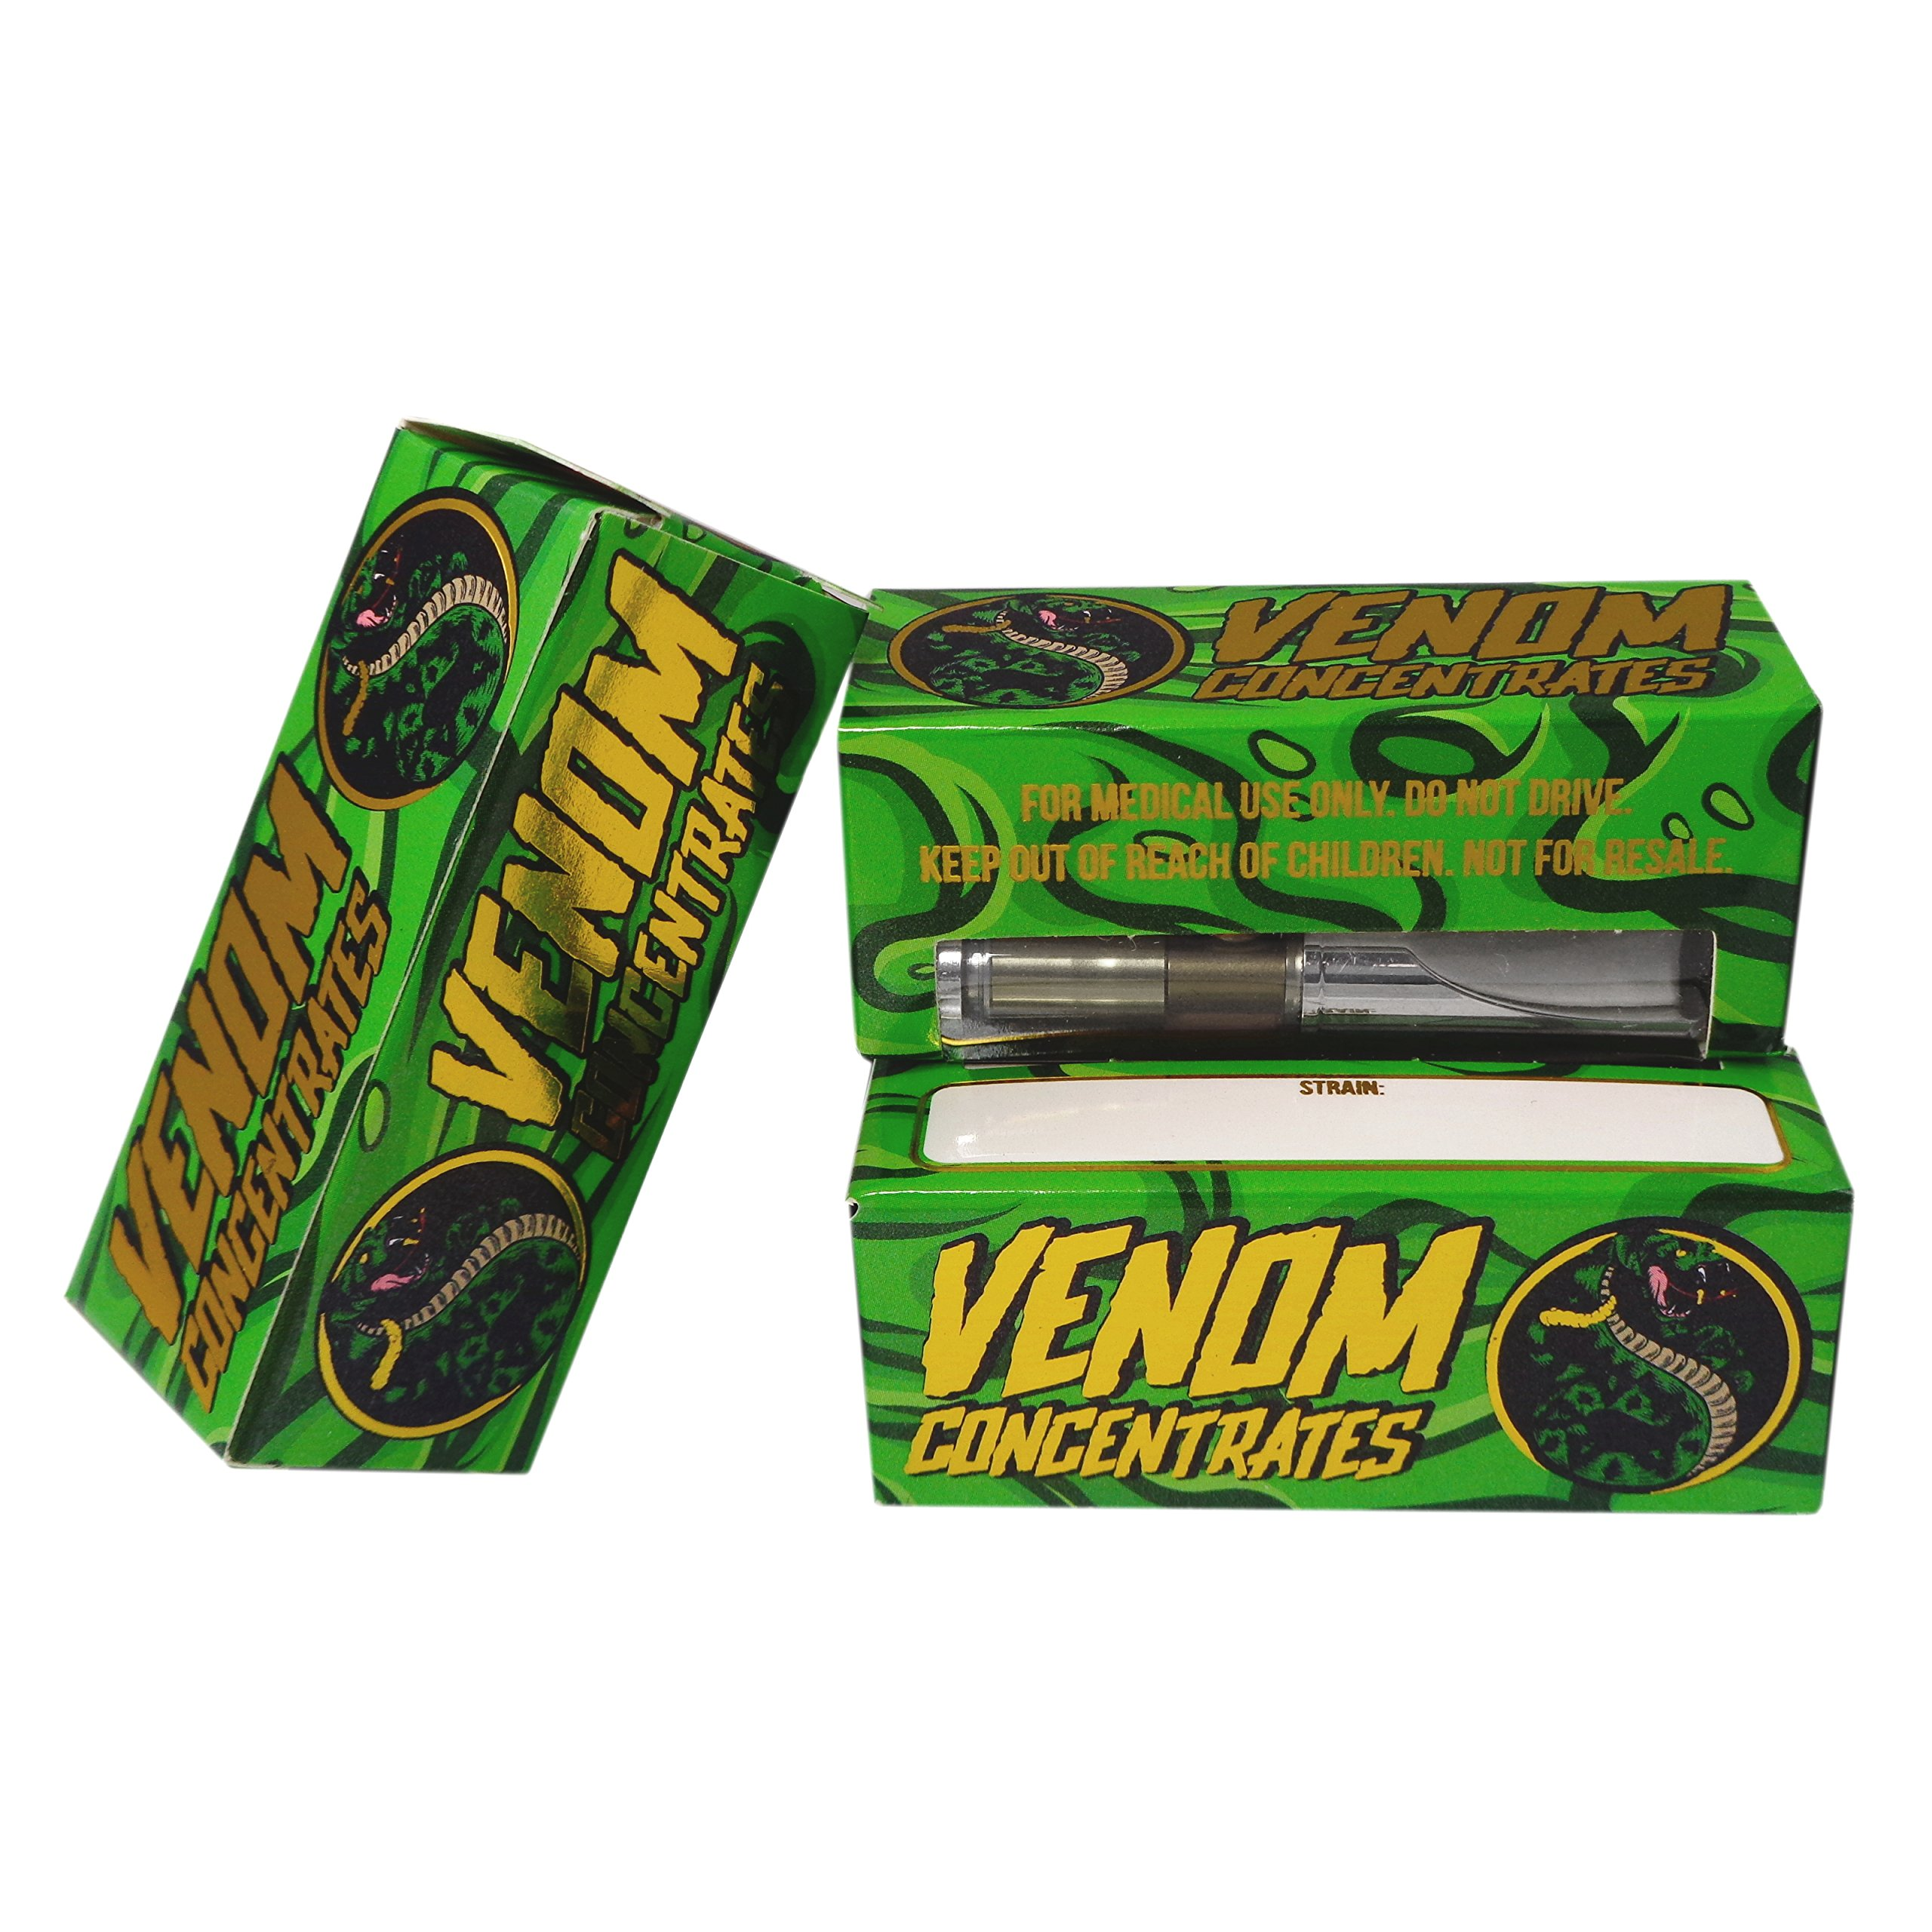 50 VENOM CONCENTRATES Oil Empty Distillate Packaging Extra Slim Boxes by Shatter Labels VB-031